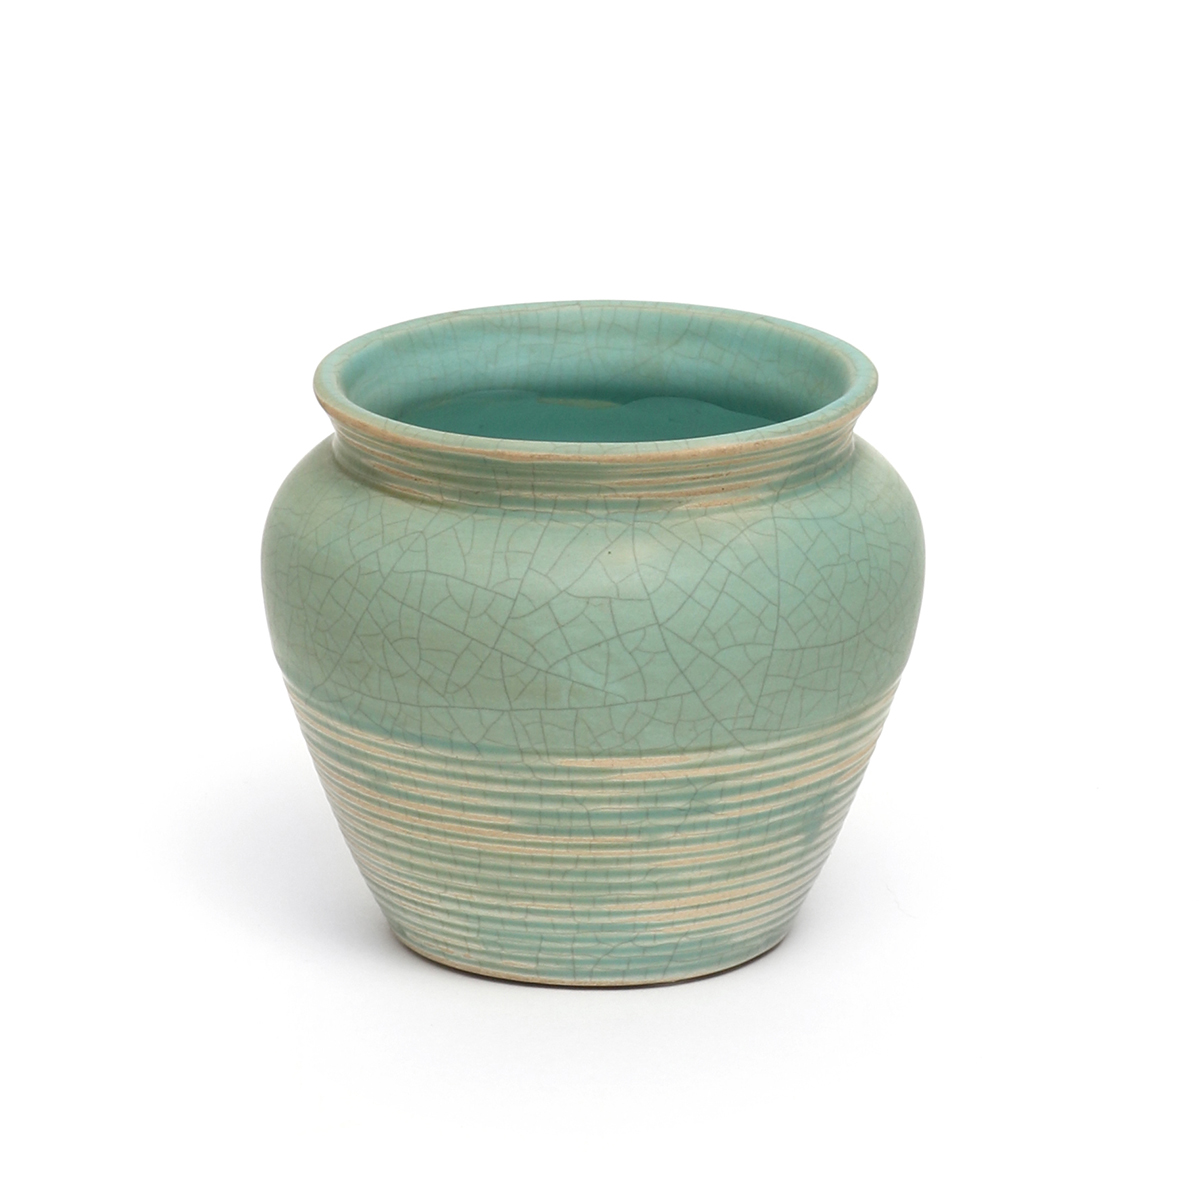 "RIBBED CRACKLE POT 3.75"" X 4.25"" GREEN 50b"